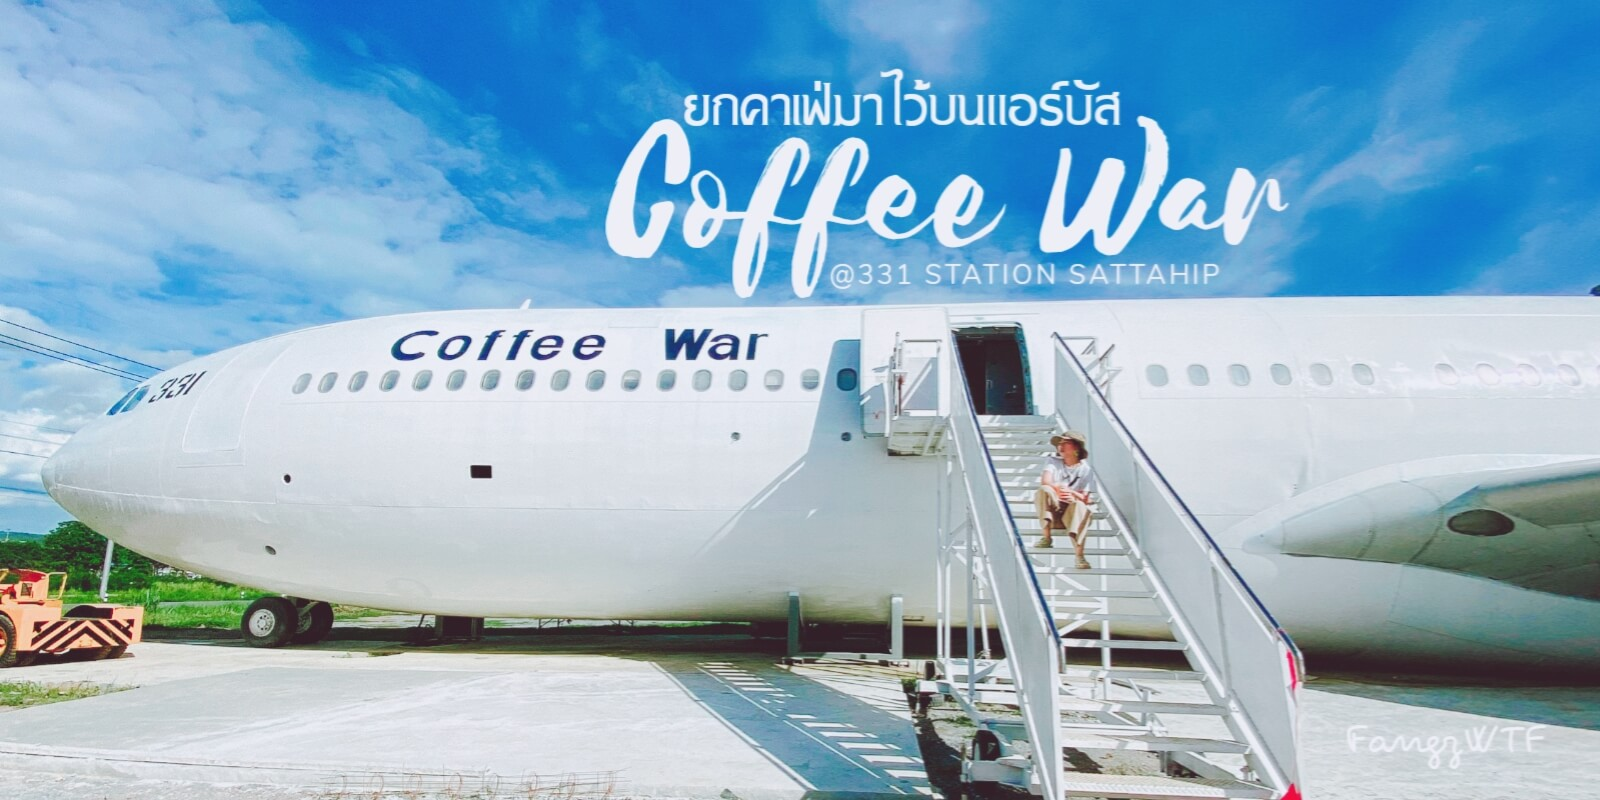 Coffee war 331